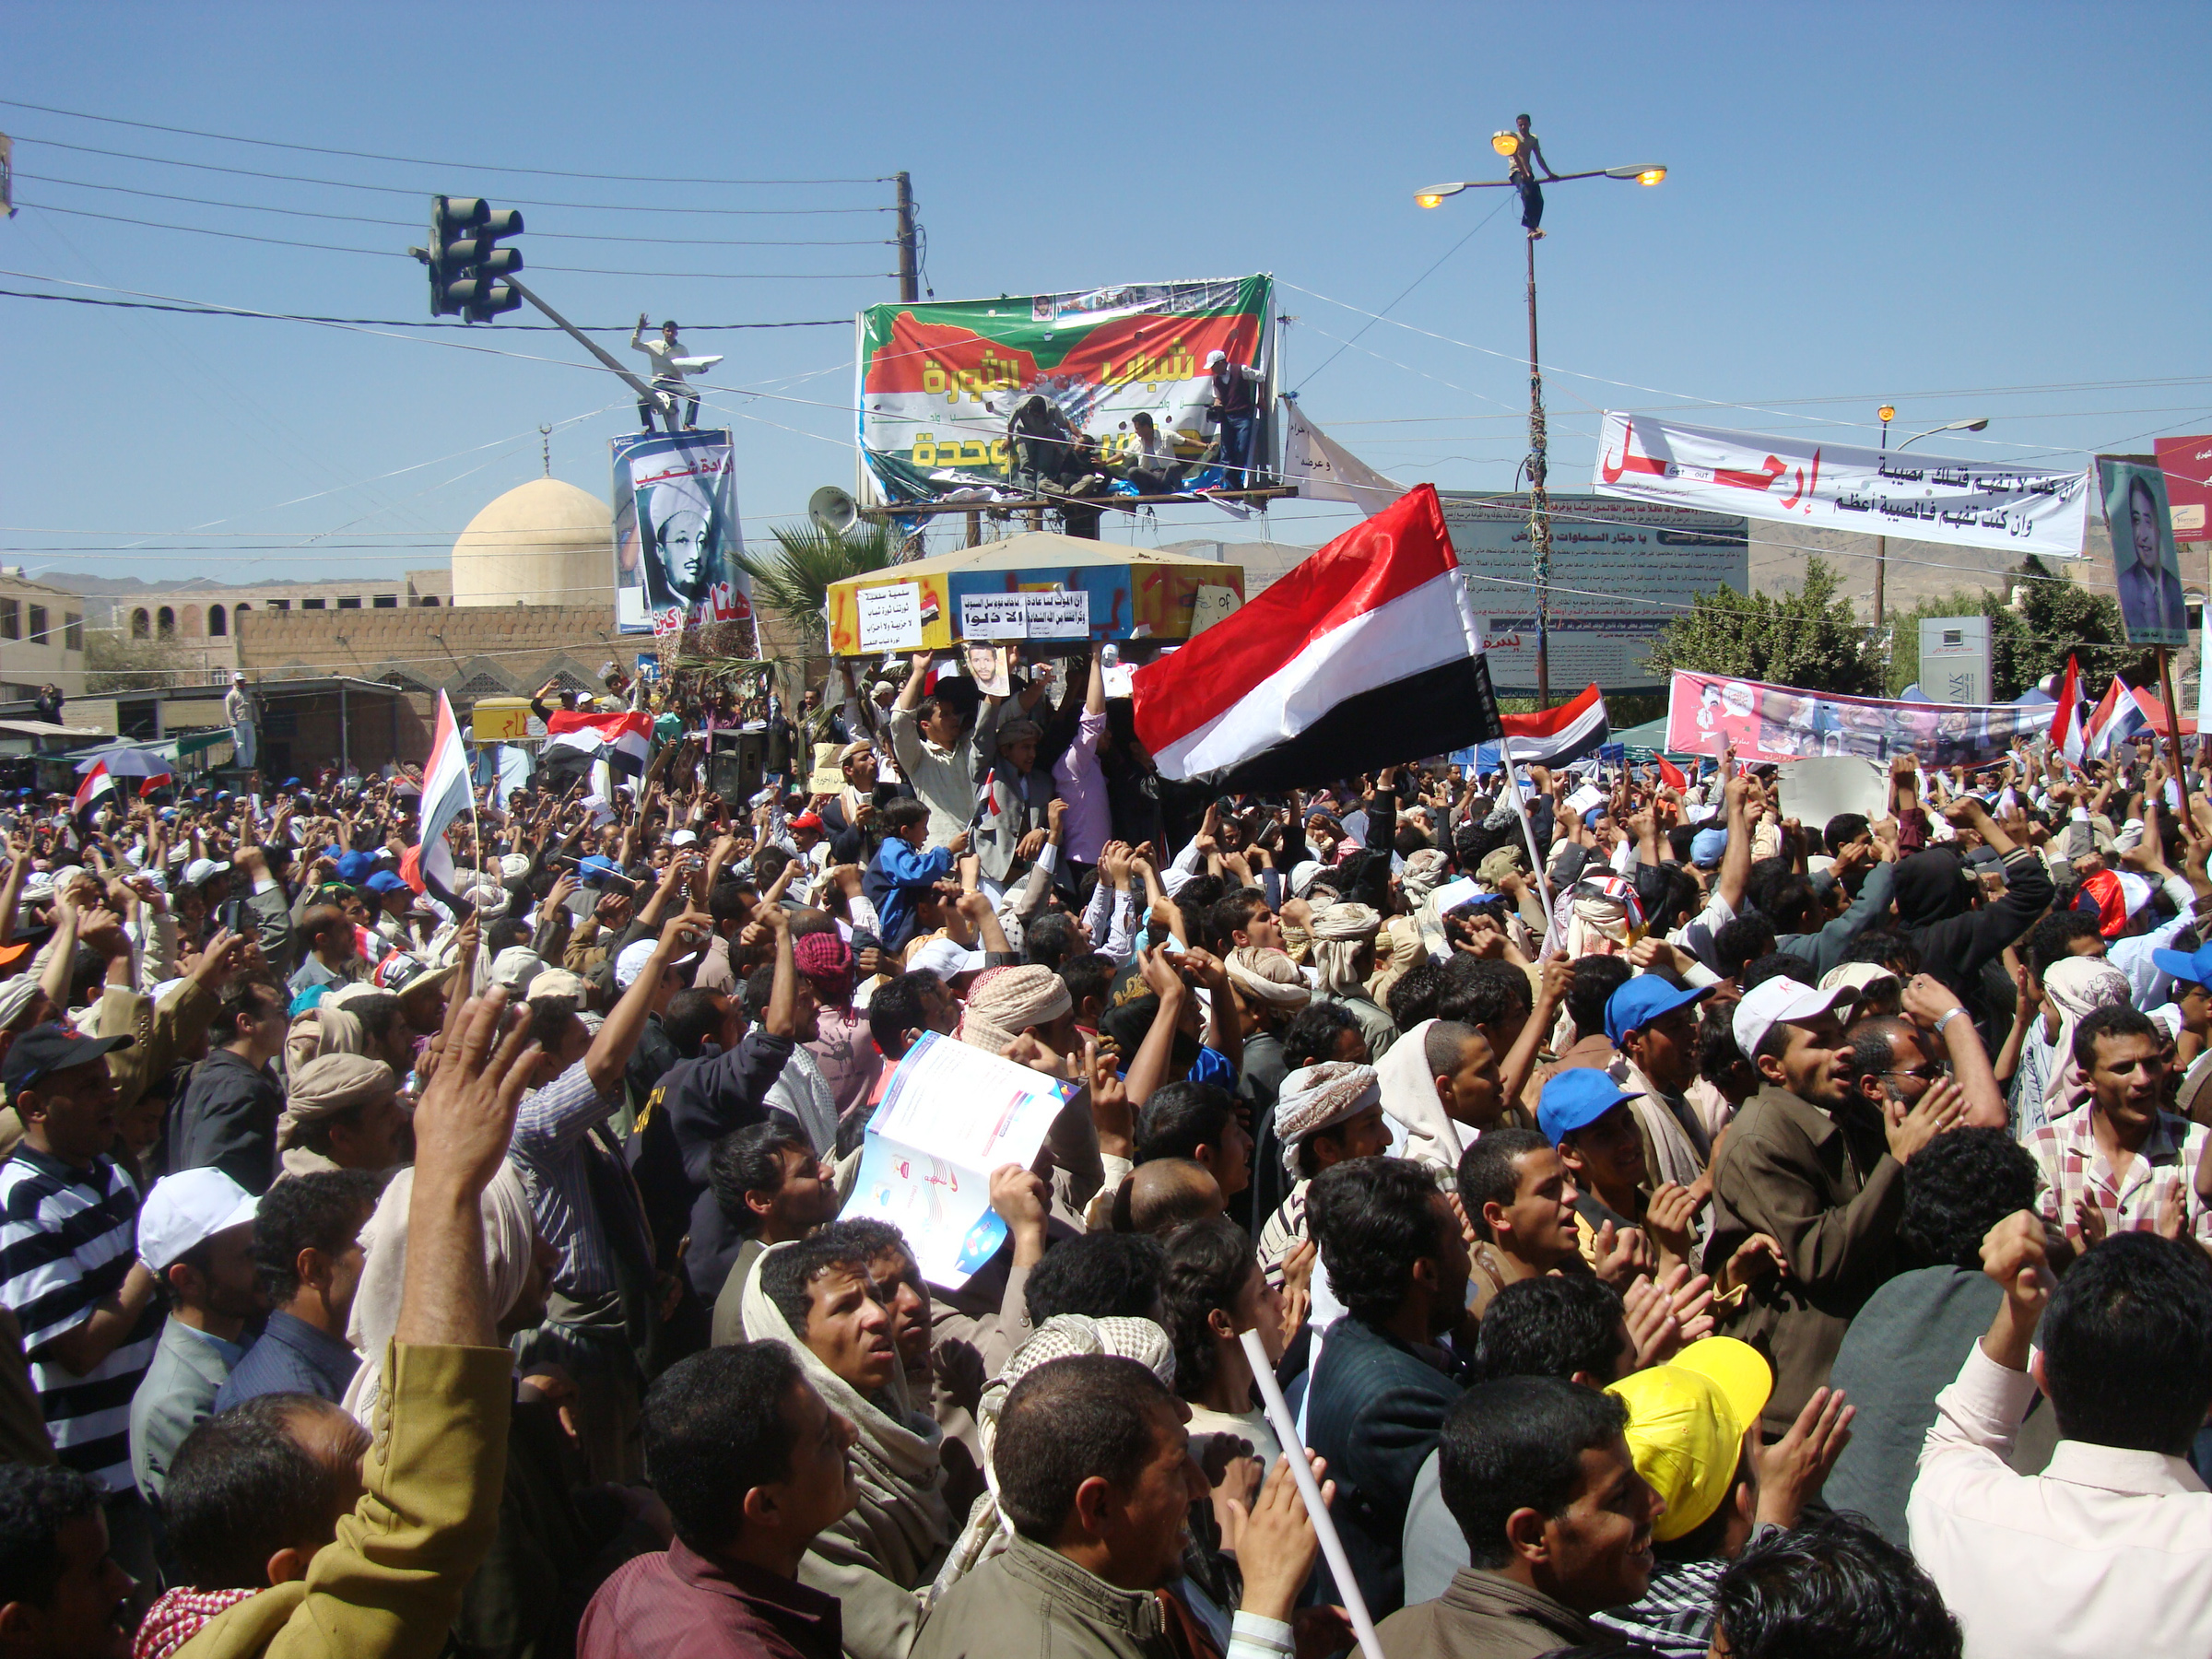 Protesters in Sanaa opposed to the power transition deal that gave Saleh immunity from prosecution